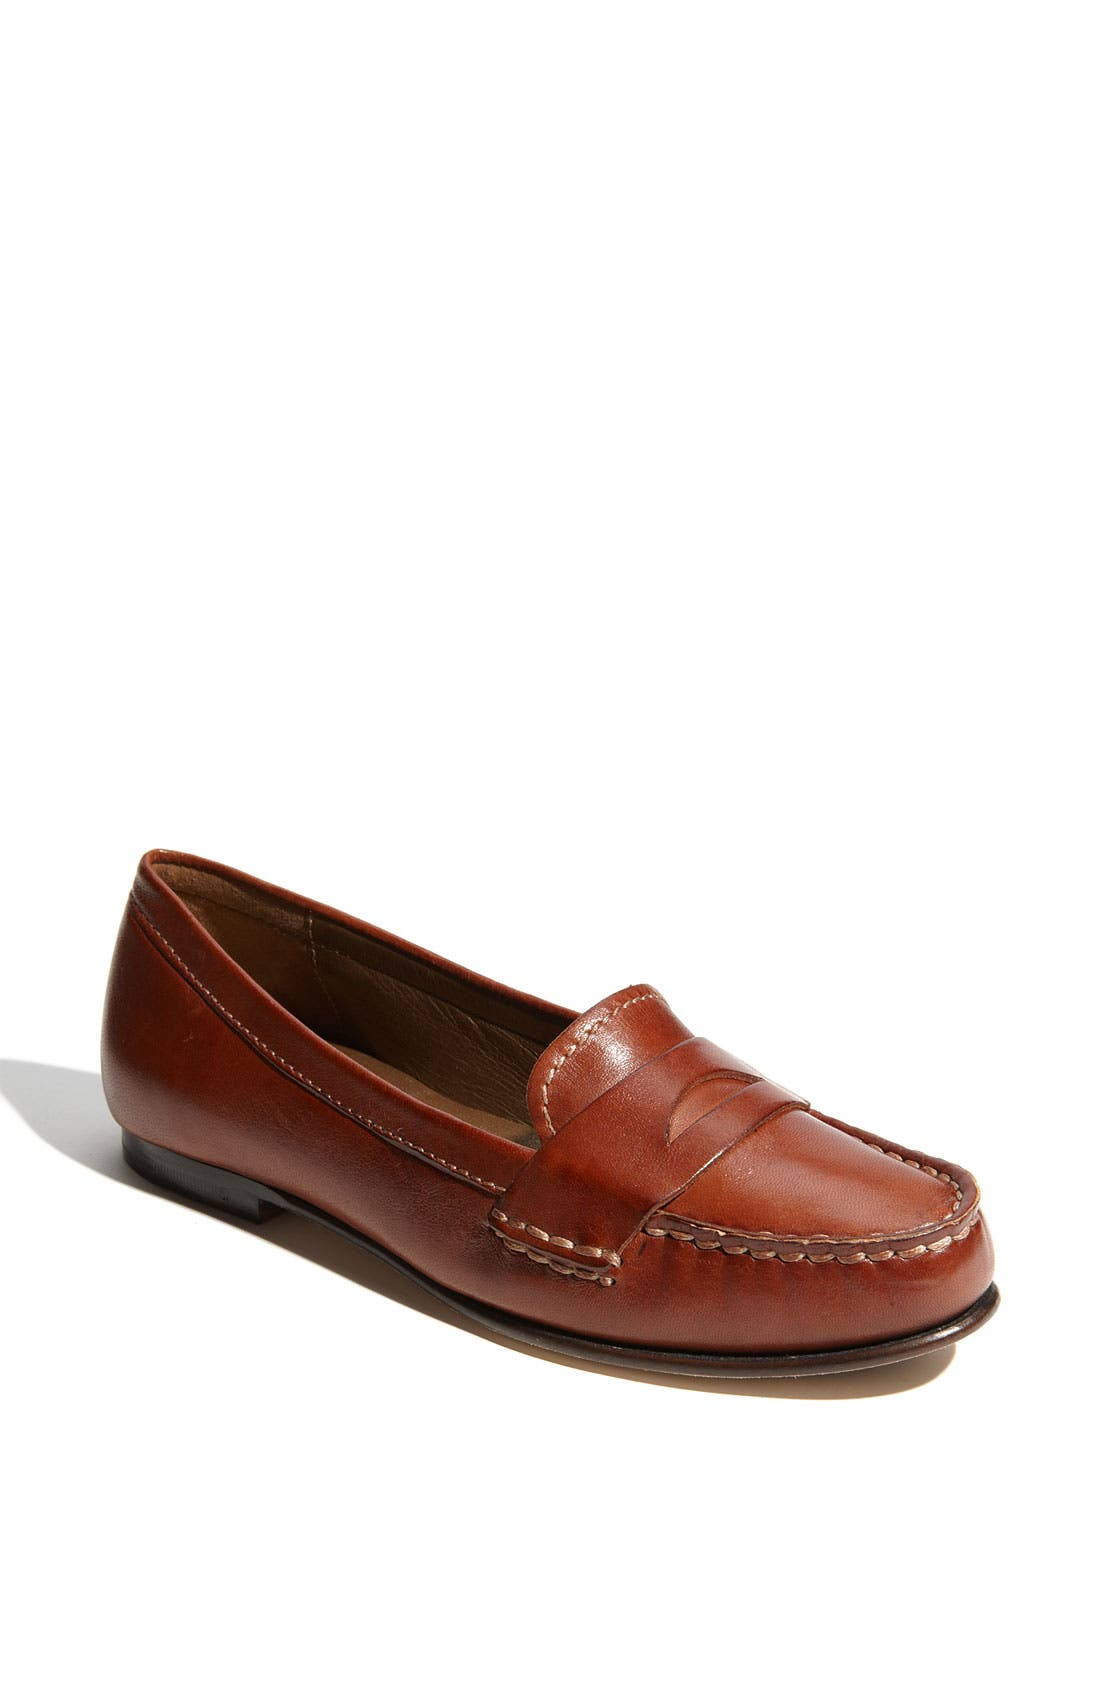 Main Image - Cole Haan 'Air Sloane' Leather Loafer